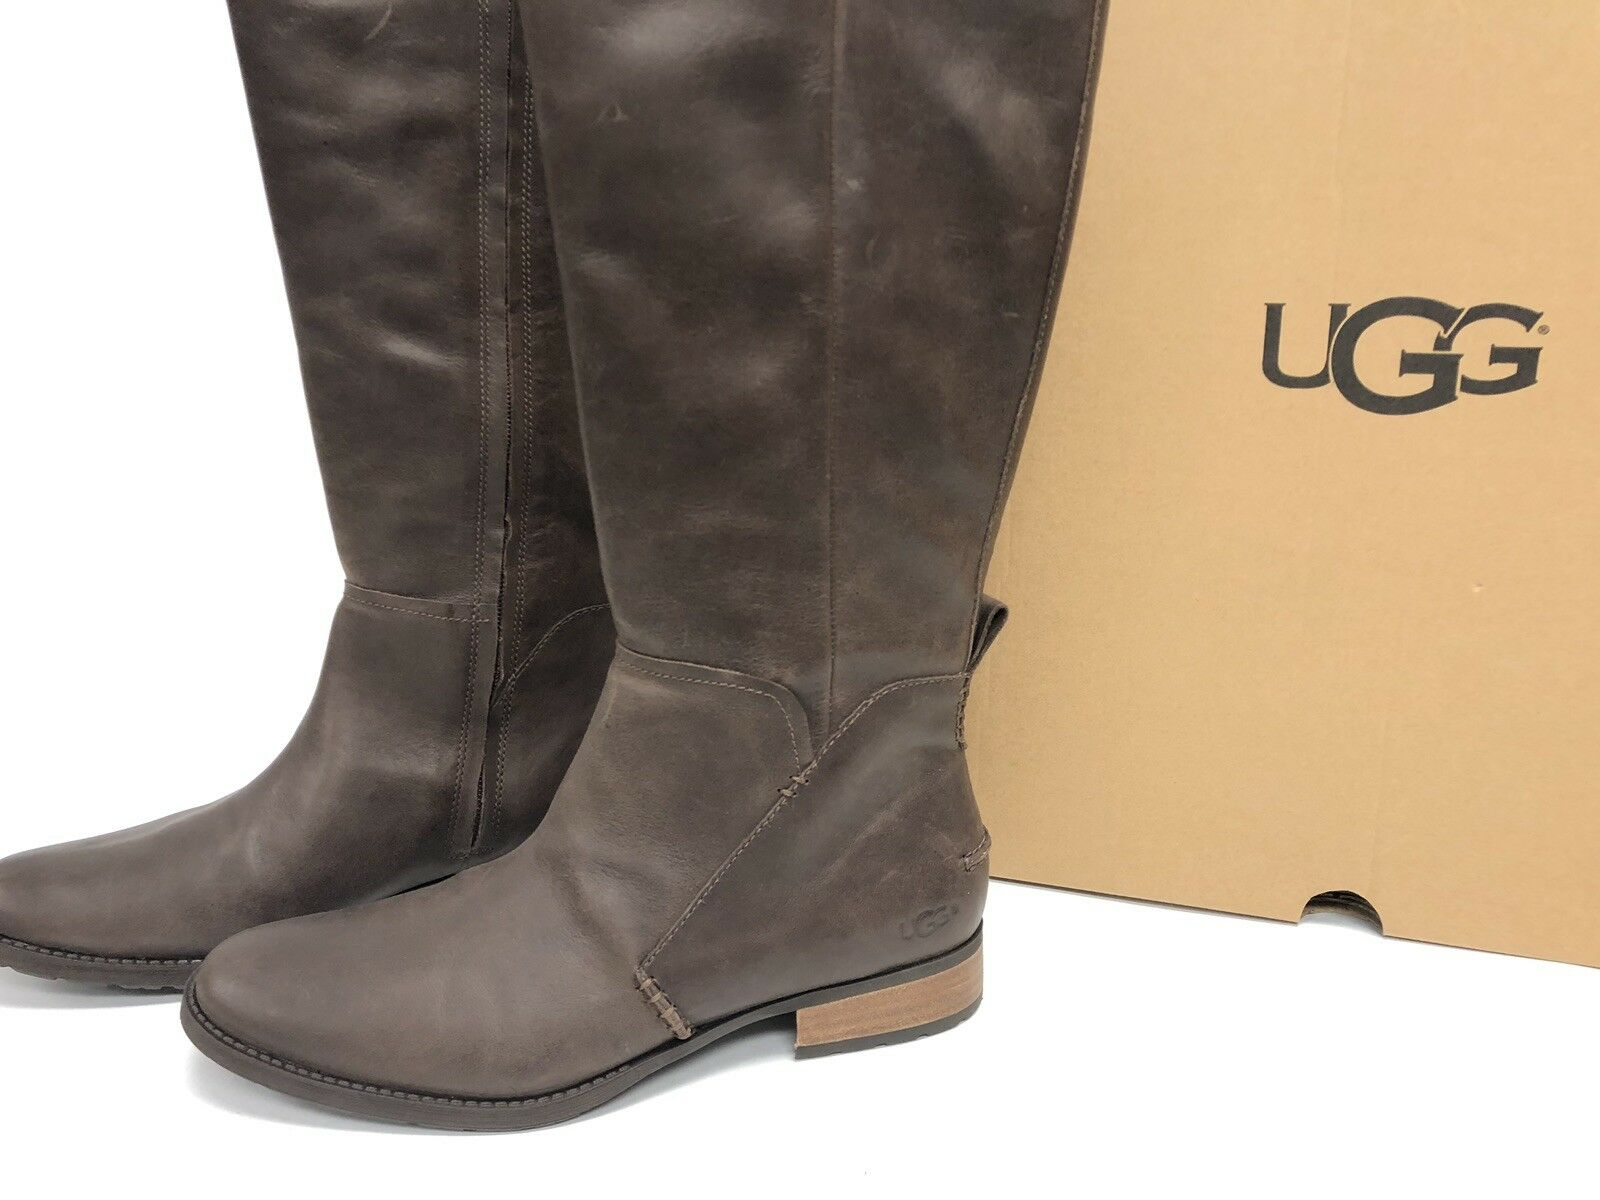 3795cf25134 UGG Australia Leigh Boot Riding 1098315 Women's Dark Brown Leather Tall  Boots ~